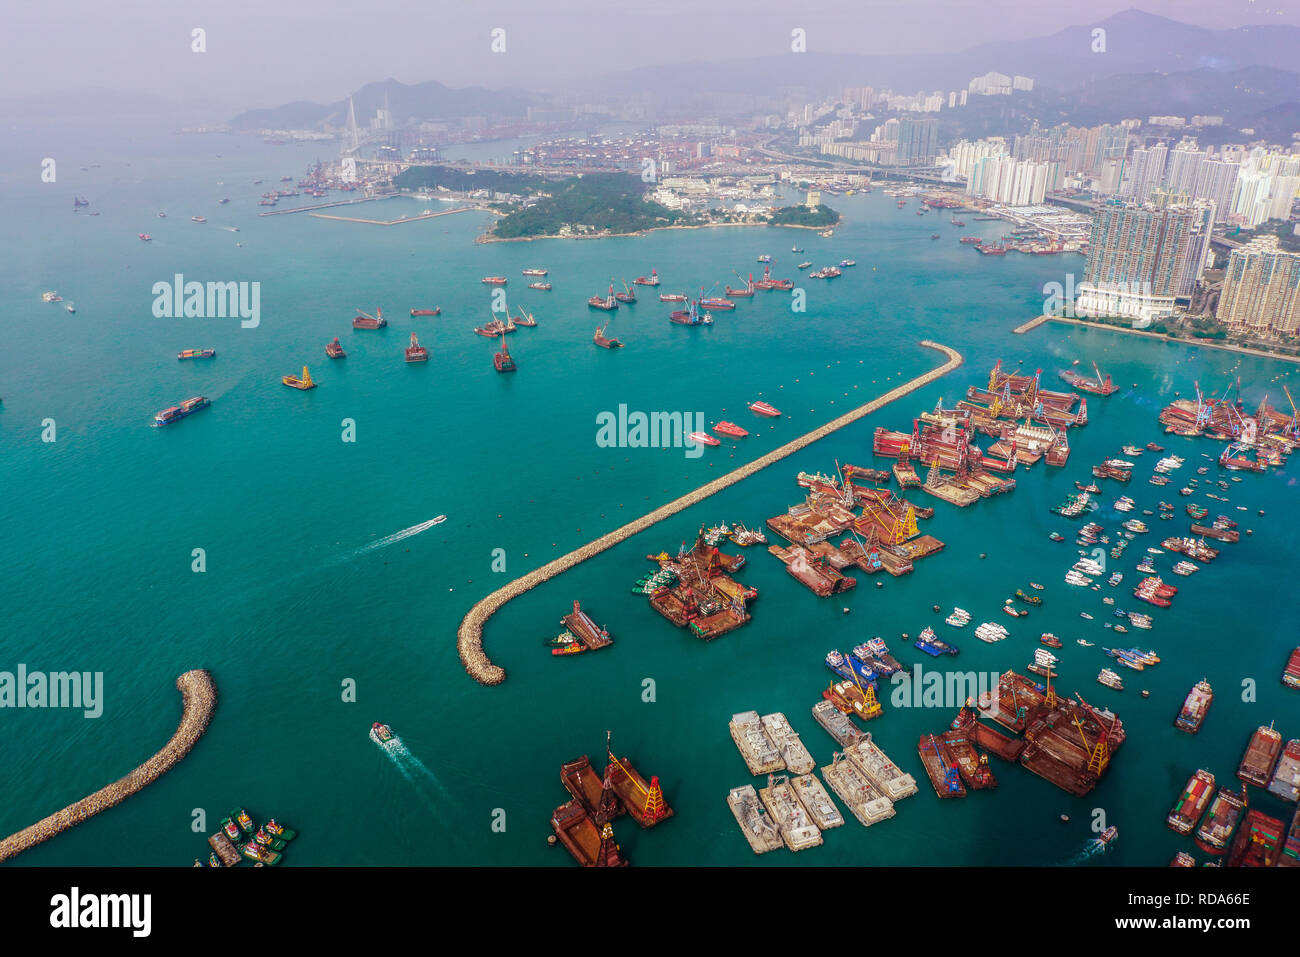 Aerial view of harbour with urban skyscrapers and sea. Hong Kong, China. - Stock Image